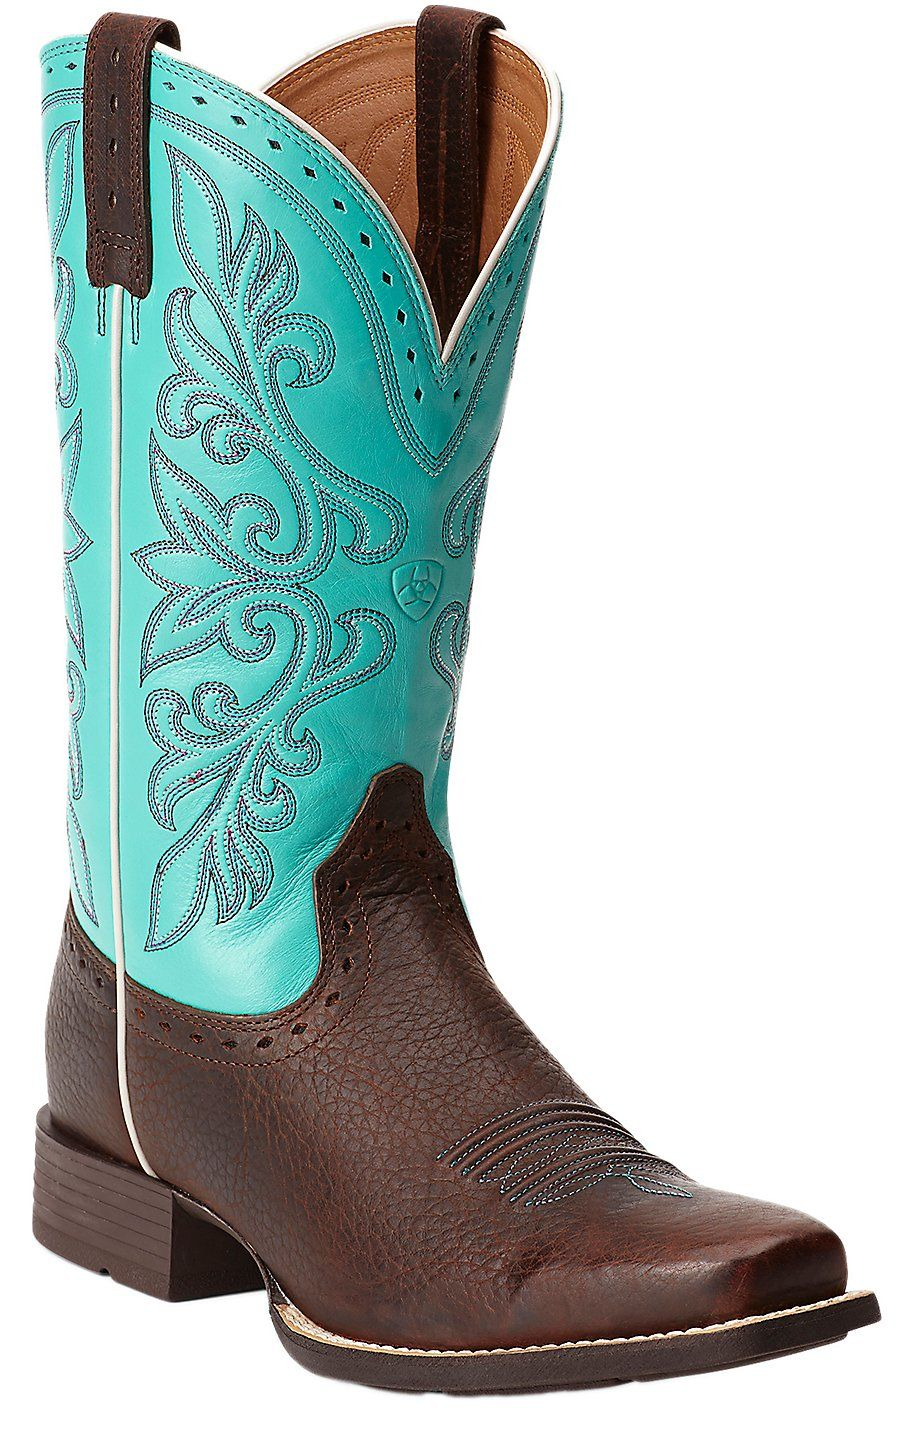 Women's cowboy boots ladies red leather sequins western ...  |Cowboy Boots With Colored Tops